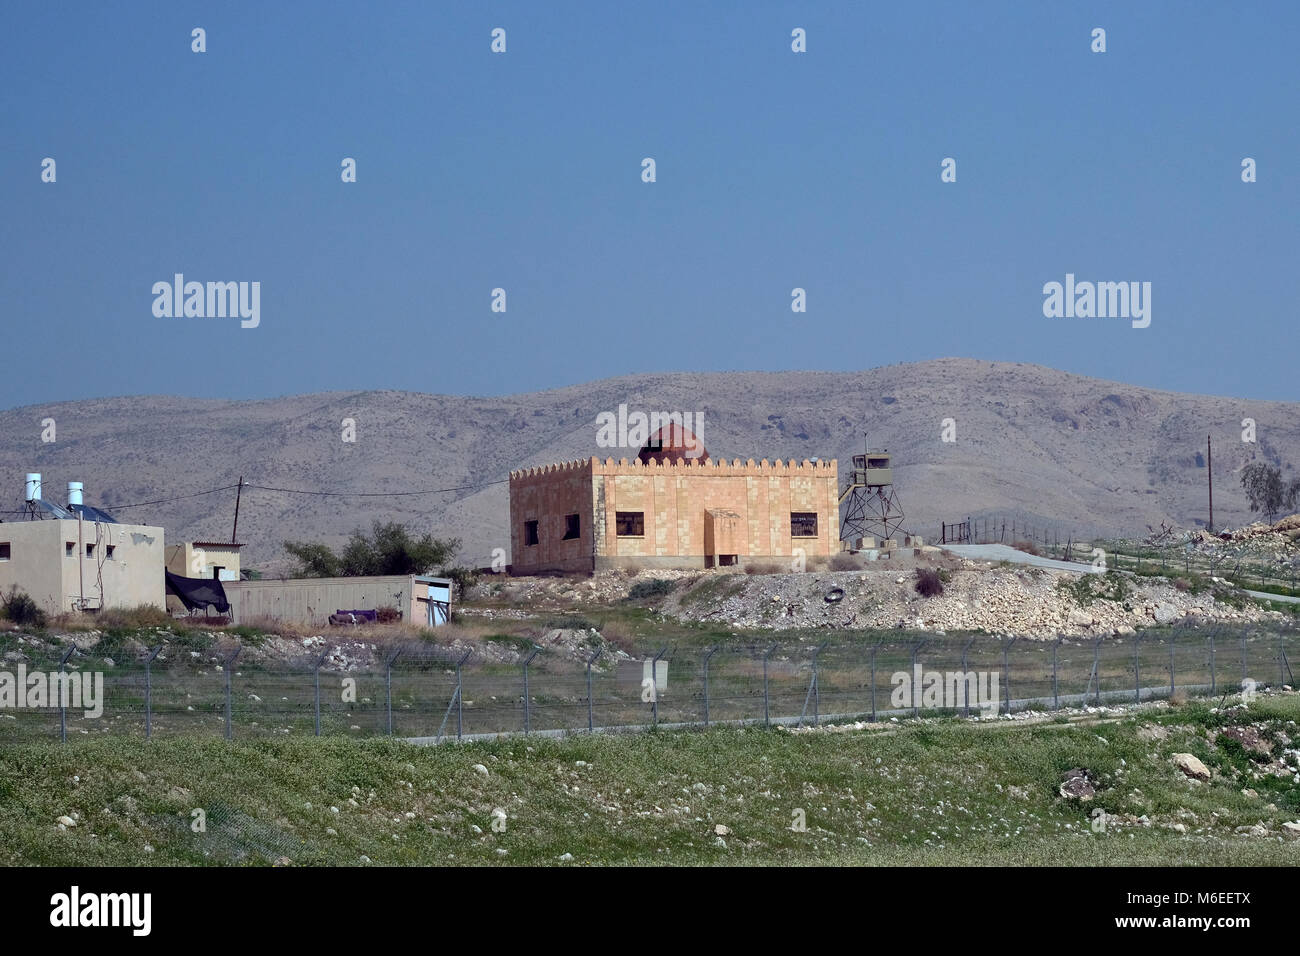 An old Islamic structure is seen in a former Jordanian military base now the Israeli military camp of Division 417 - Stock Image